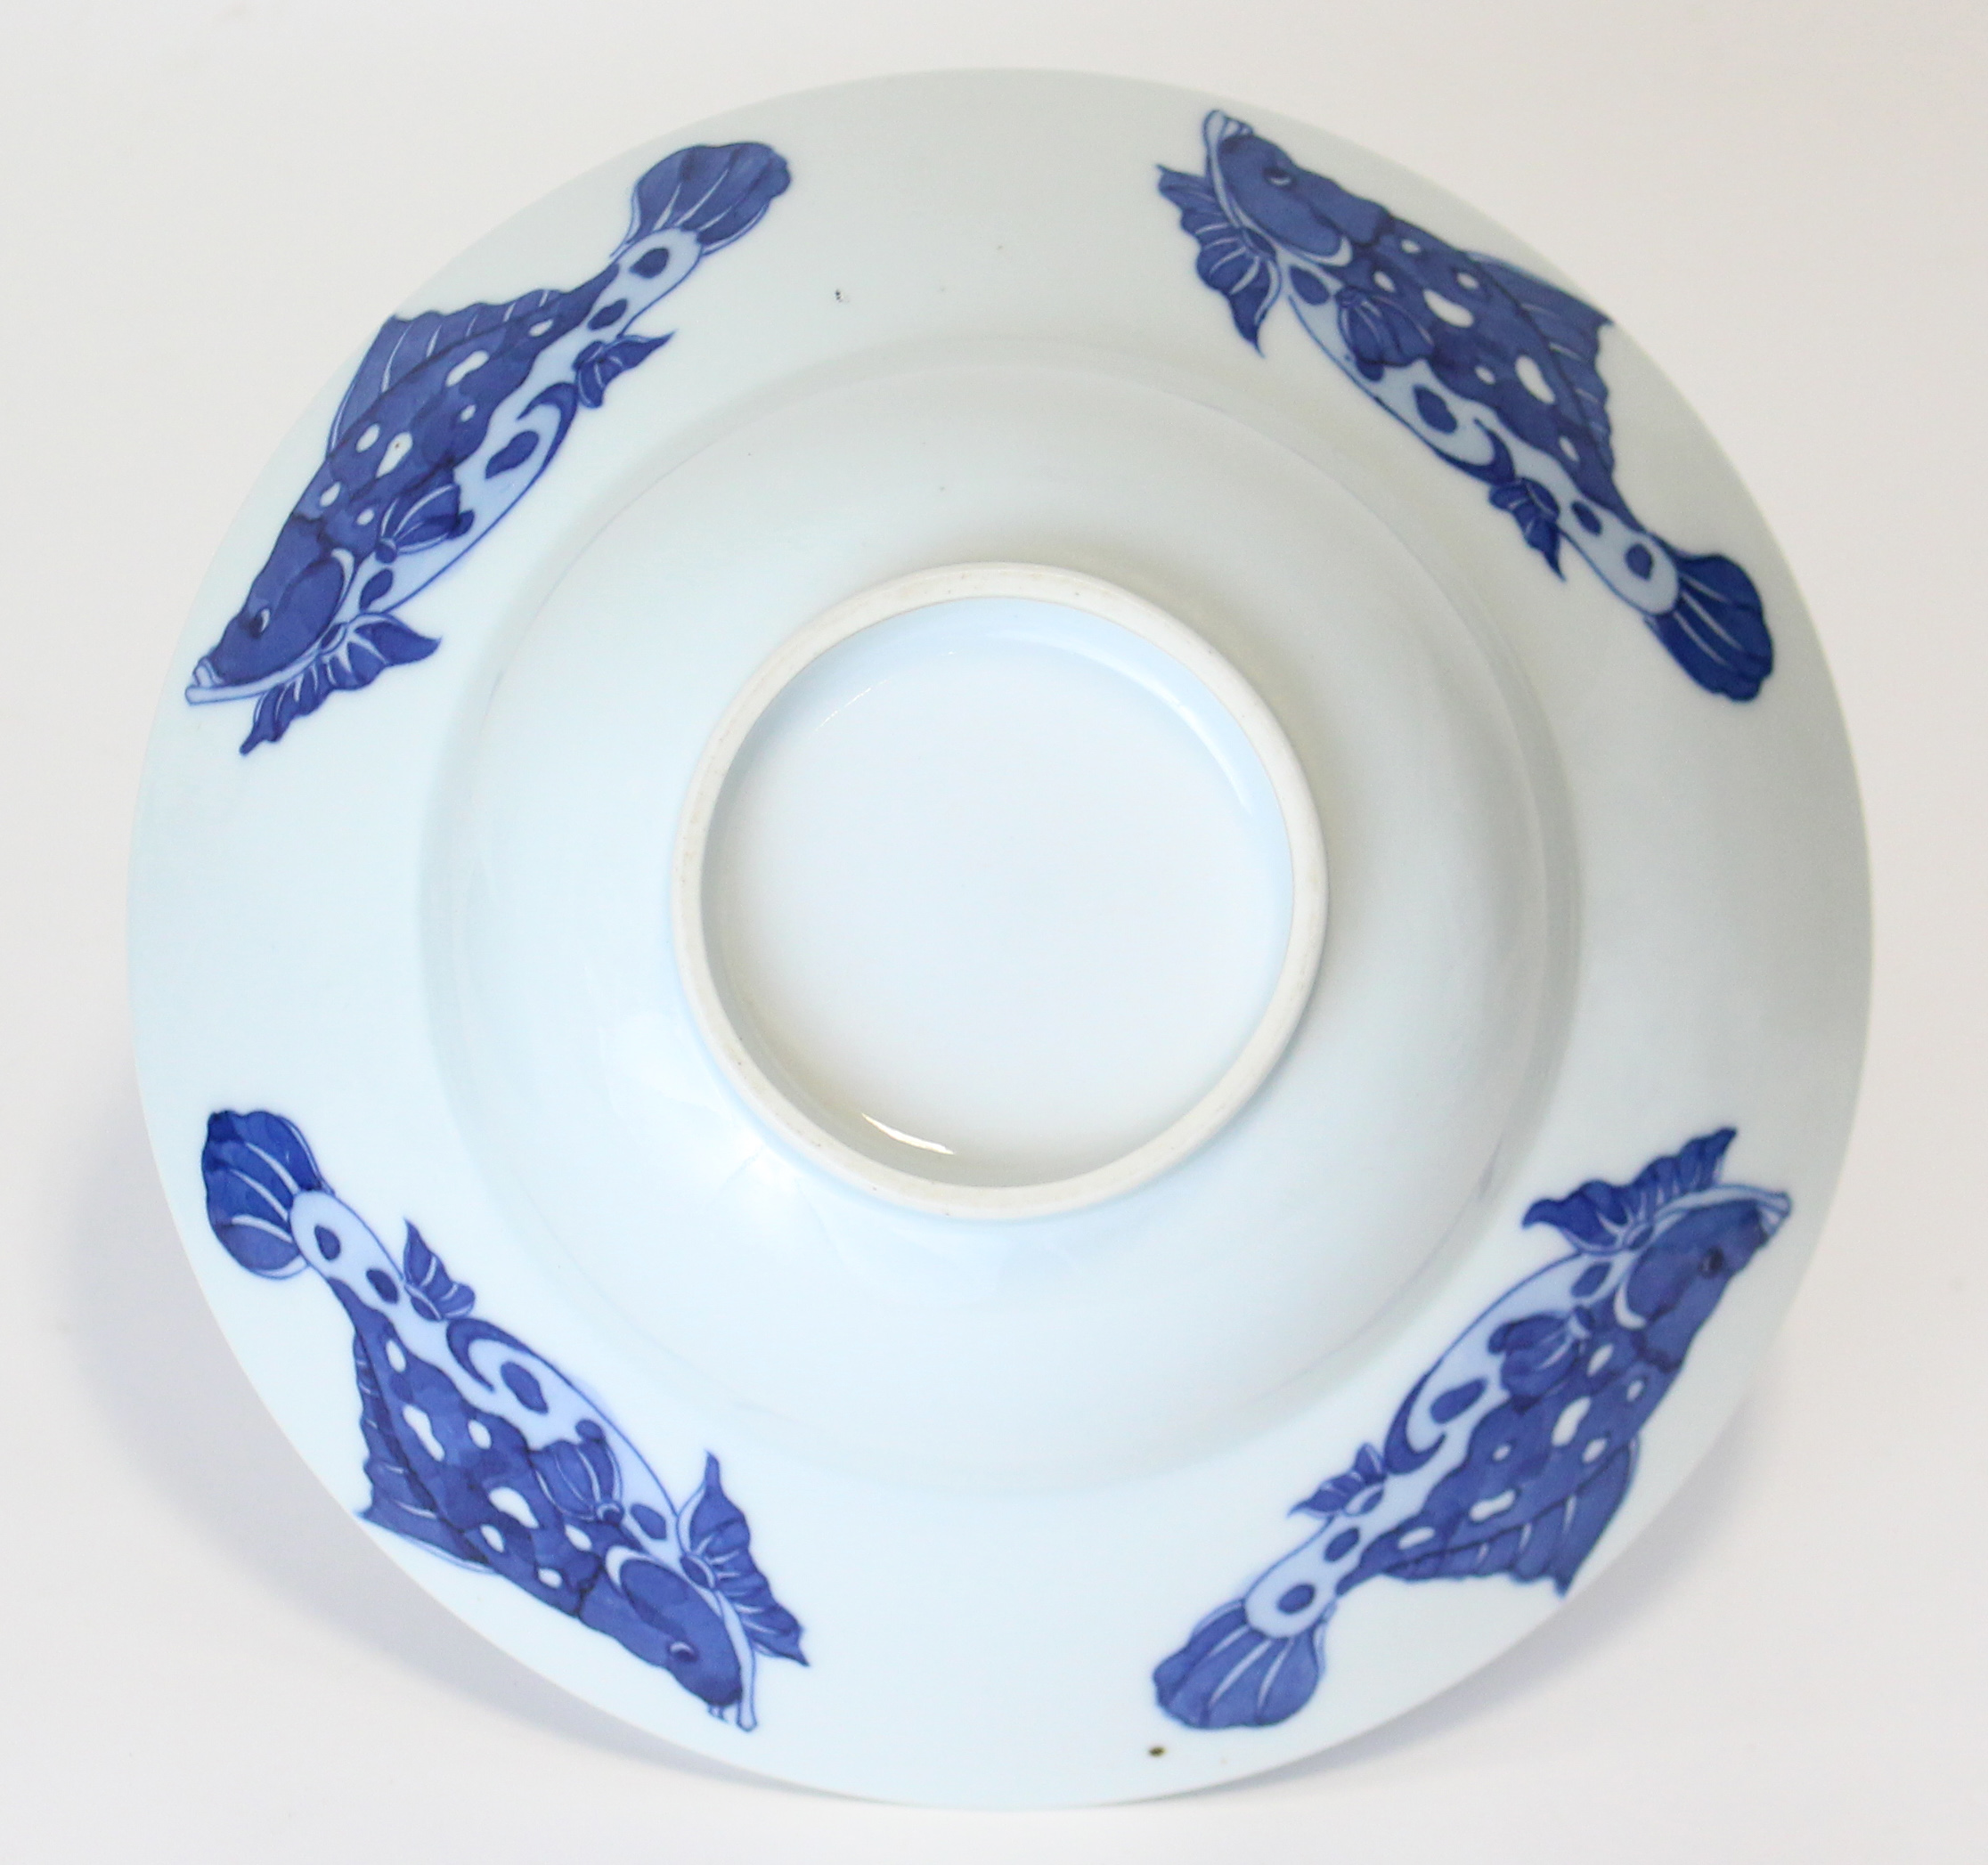 Lot 207 - A Chinese blue & white porcelain bowl, the wide flared rim decorated with fish to the exterior &